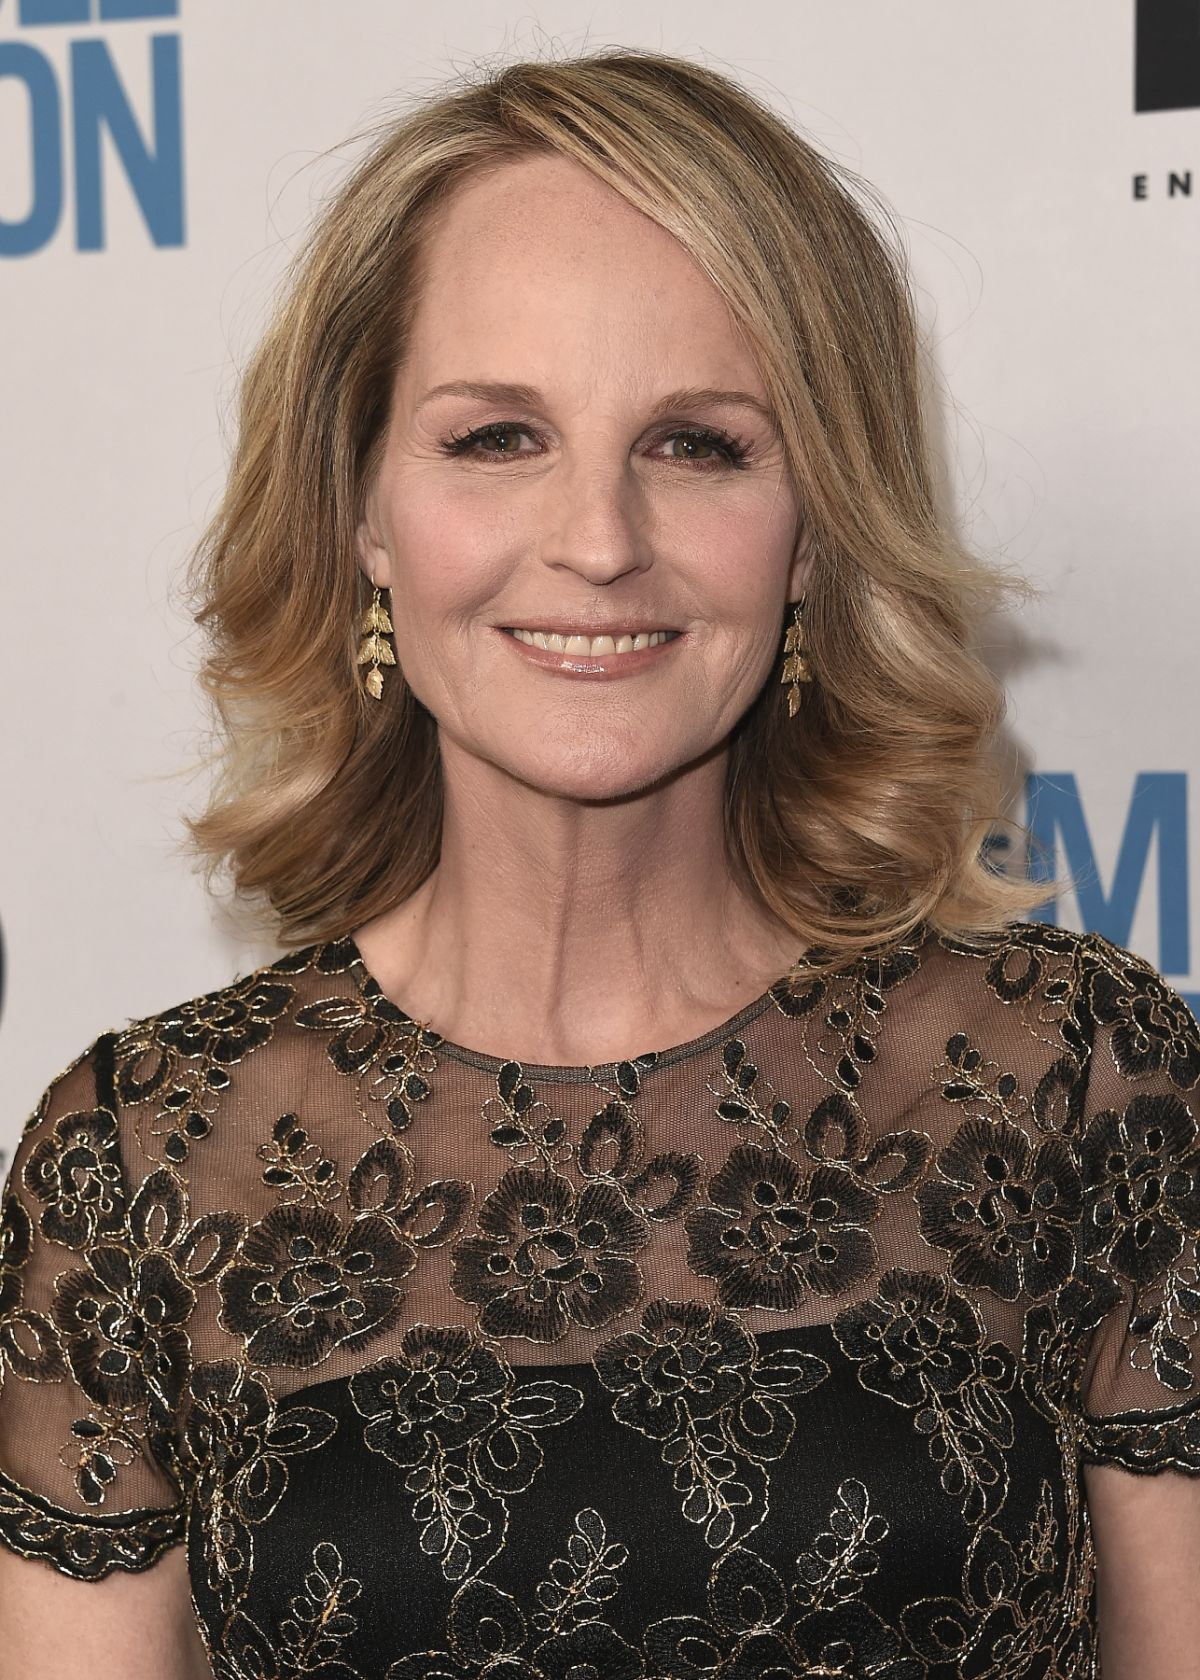 Boobs 2019 Helen Hunt naked photo 2017